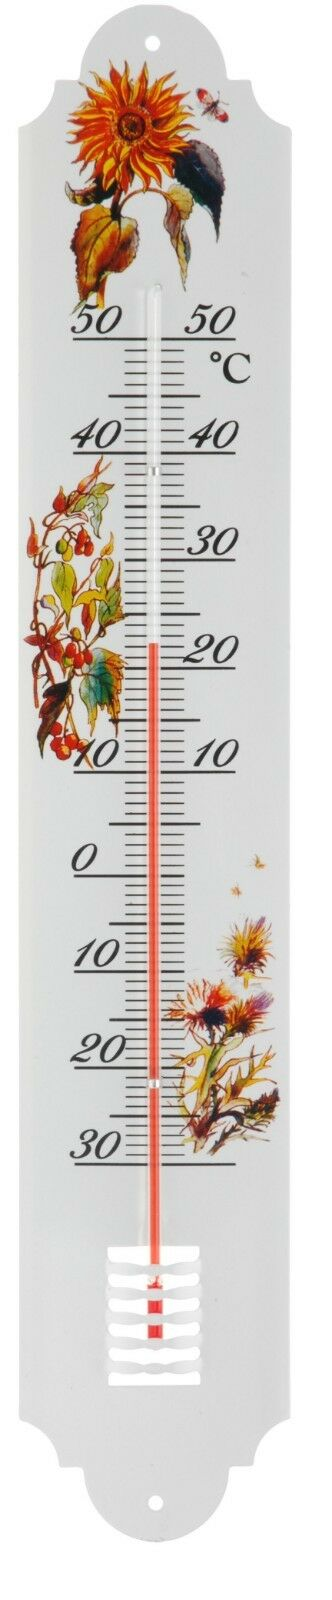 Super Large Metal 50cm Tall Garden Thermometer